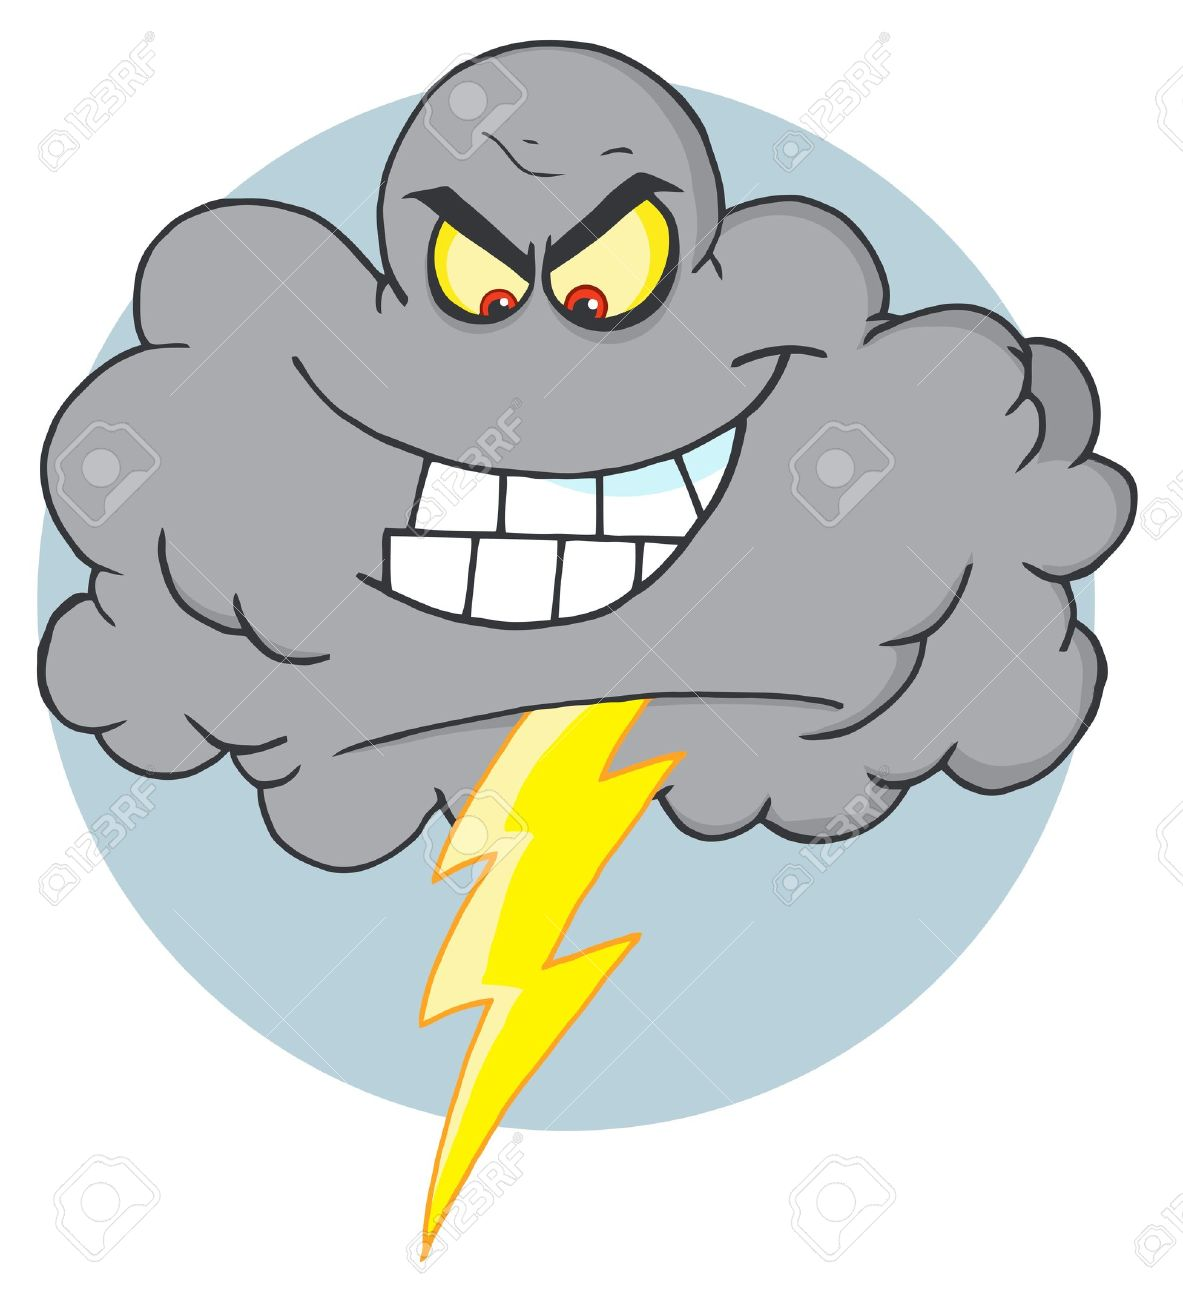 Angry storm cloud clipart.